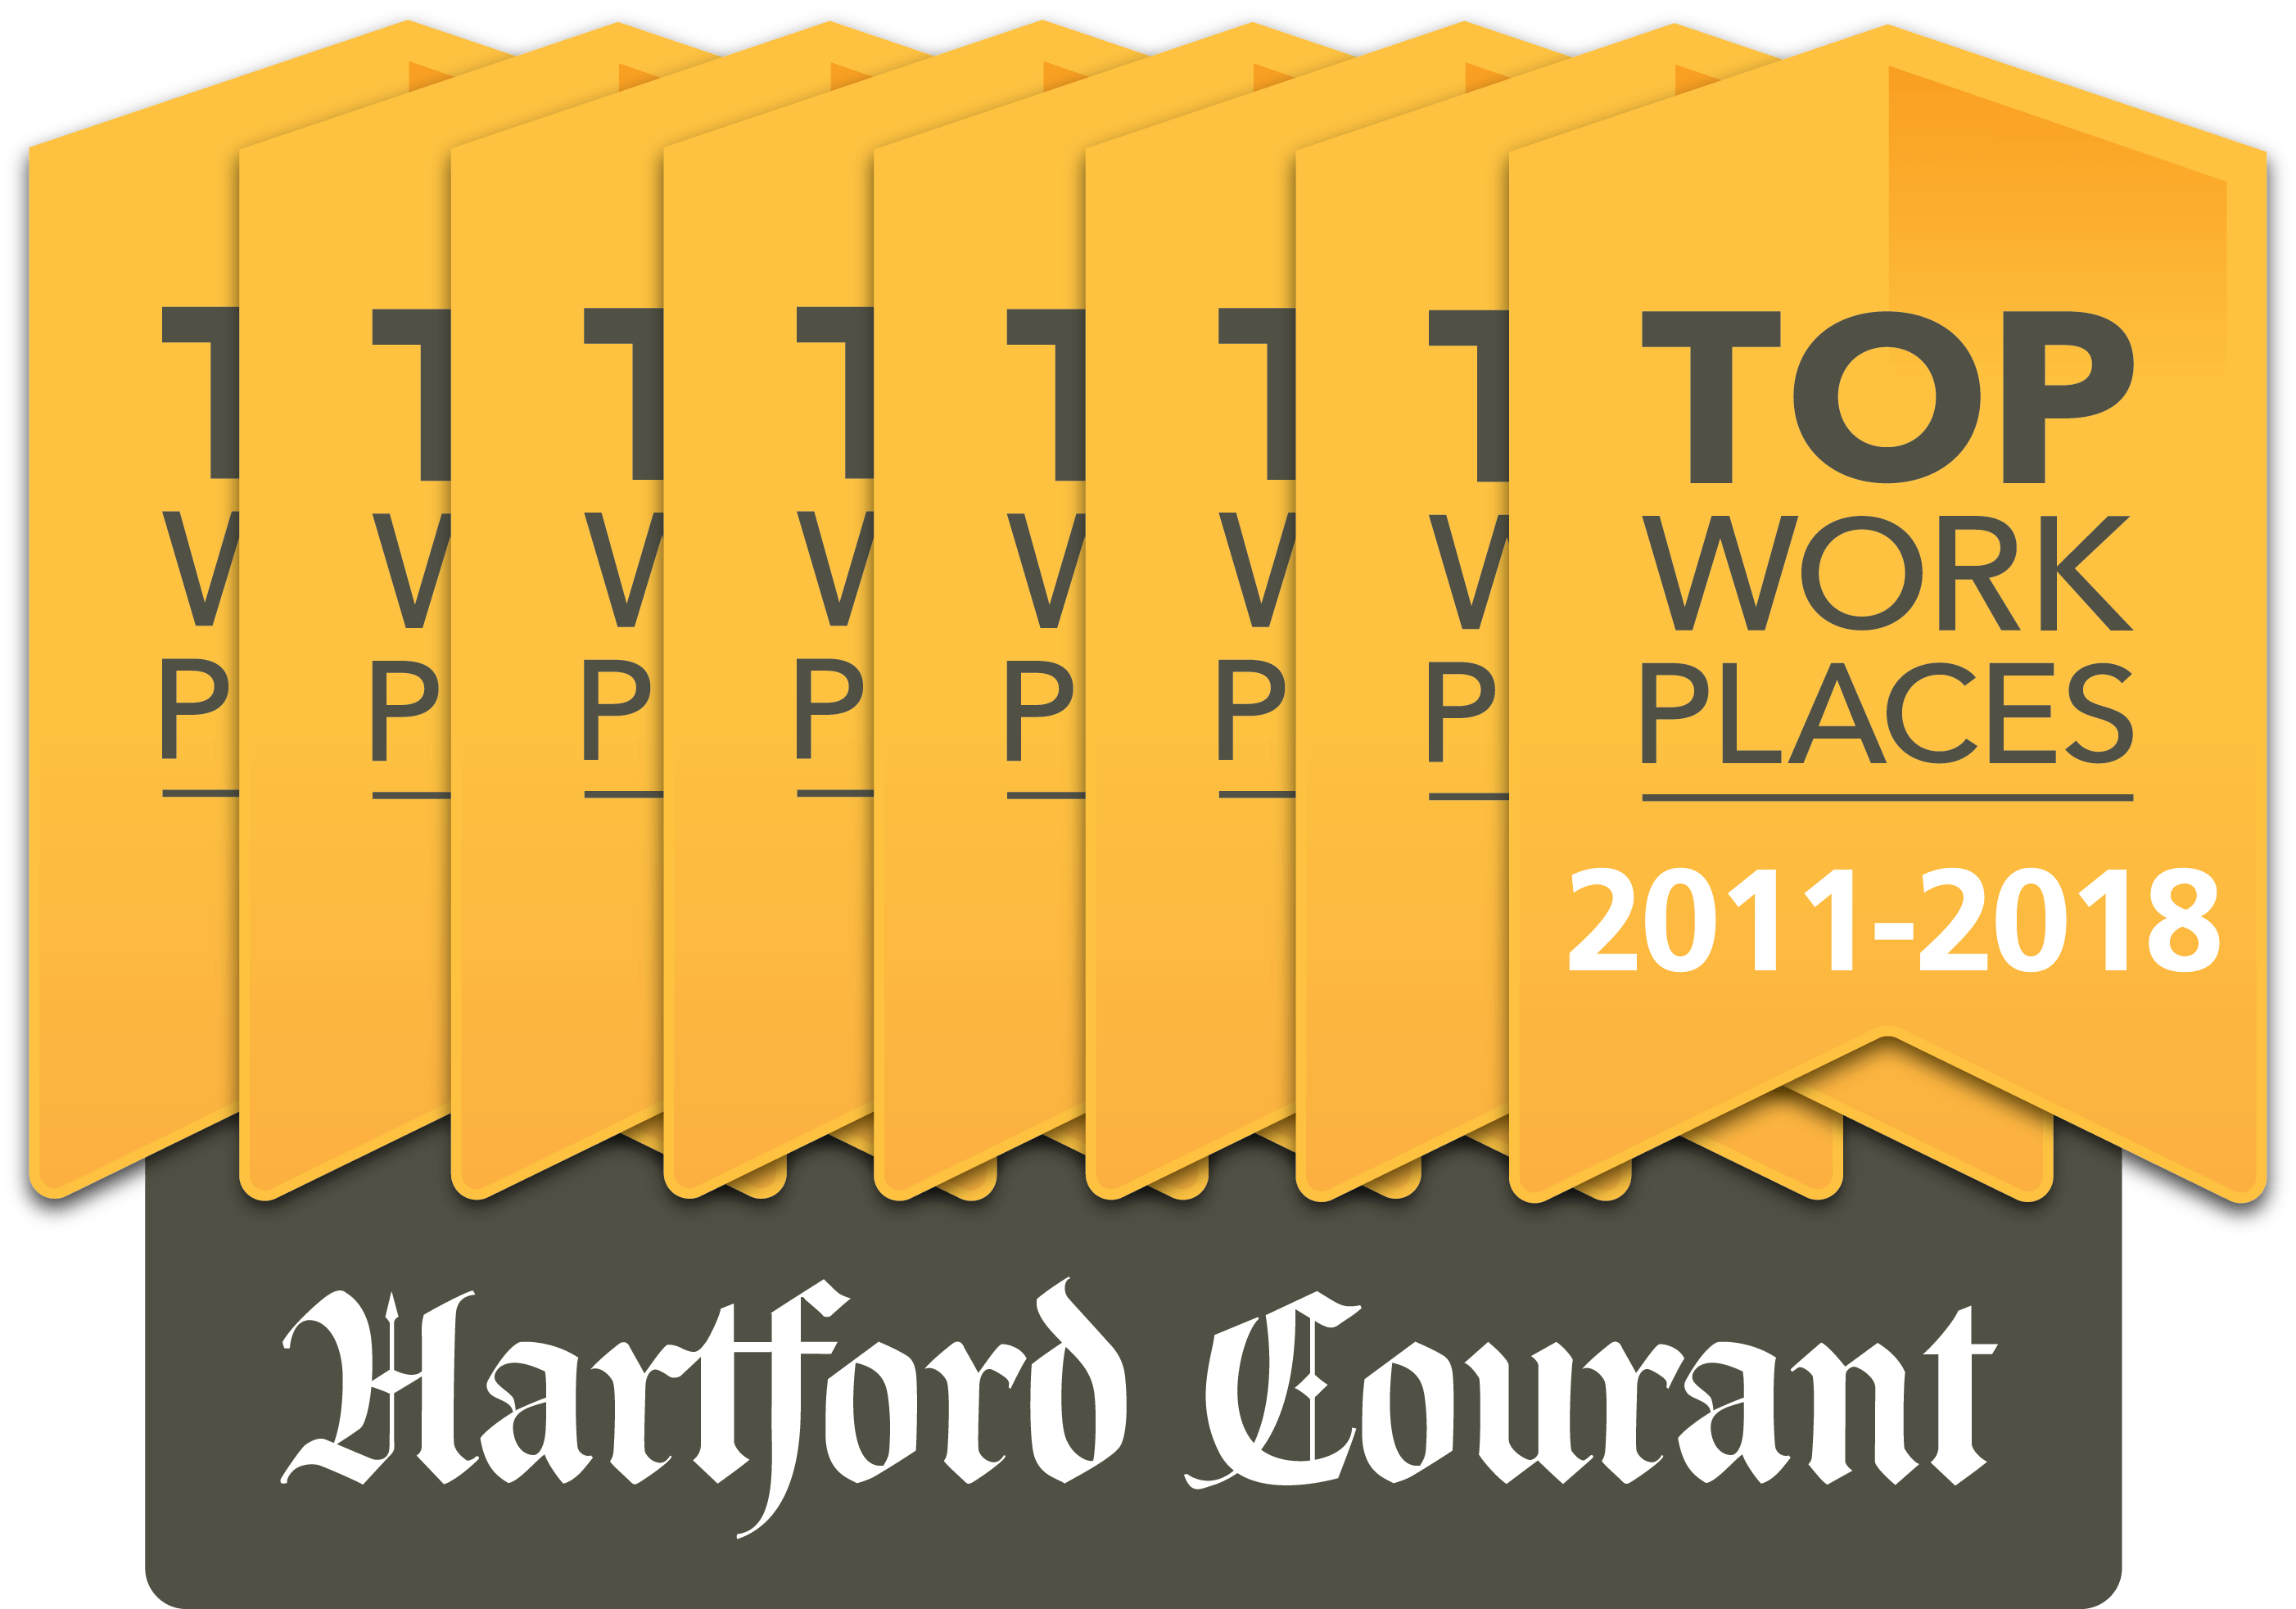 Learn more about Hartford Courant